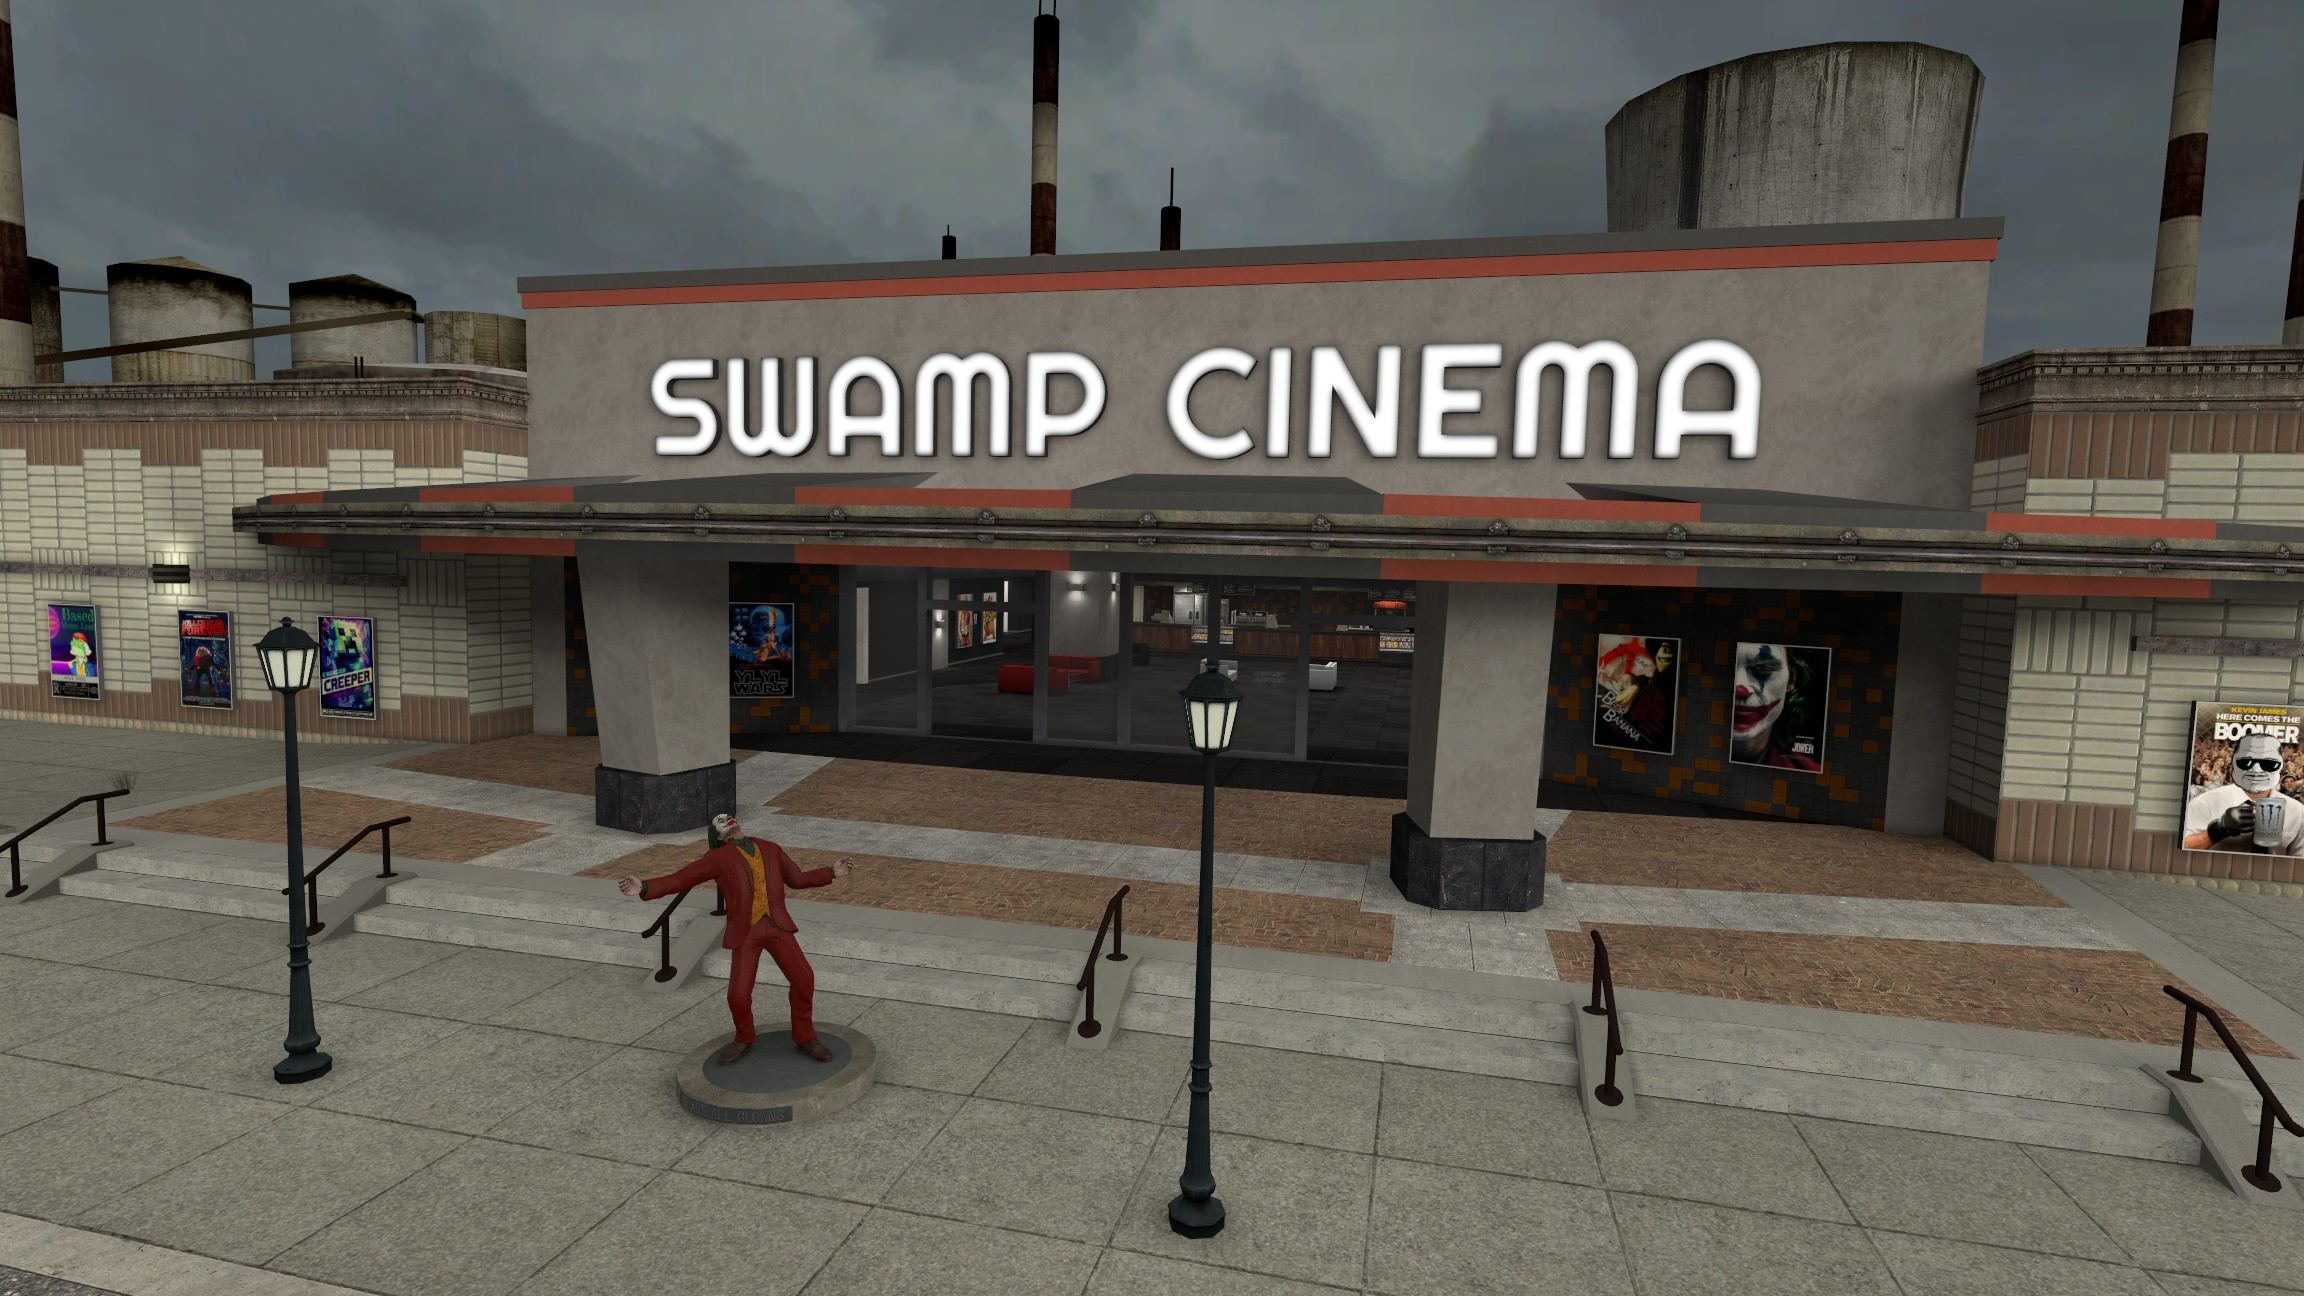 Swamp Cinema